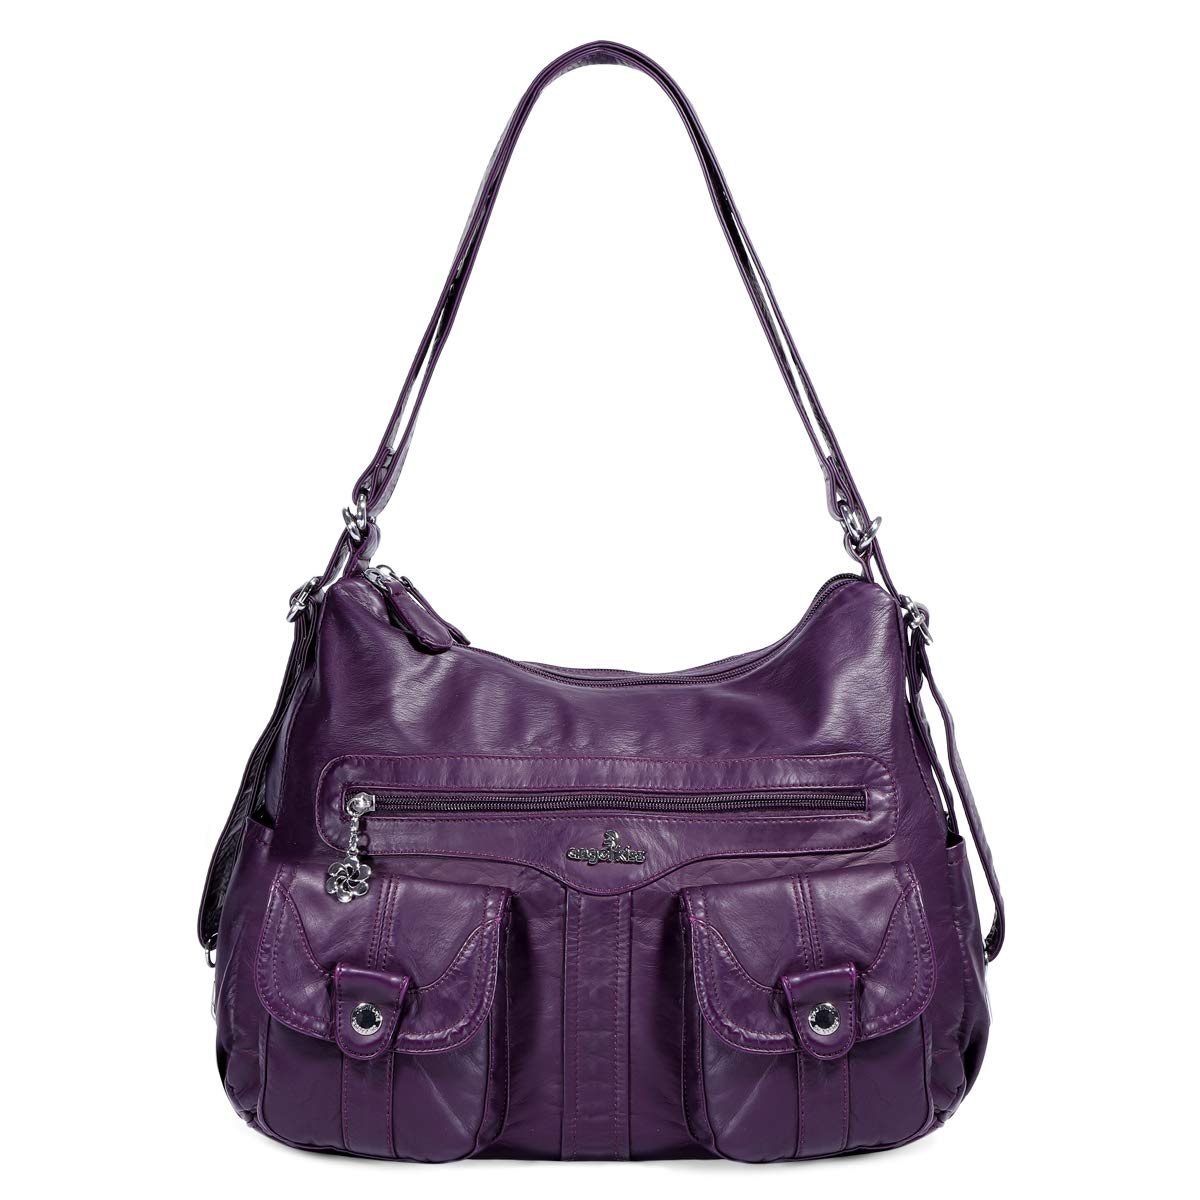 Angelkiss Women's Multifunctional Shoulder Hobo Bag Soft Leather Messenger Crossbody Purse Satchels Handbags with Zipper Purple